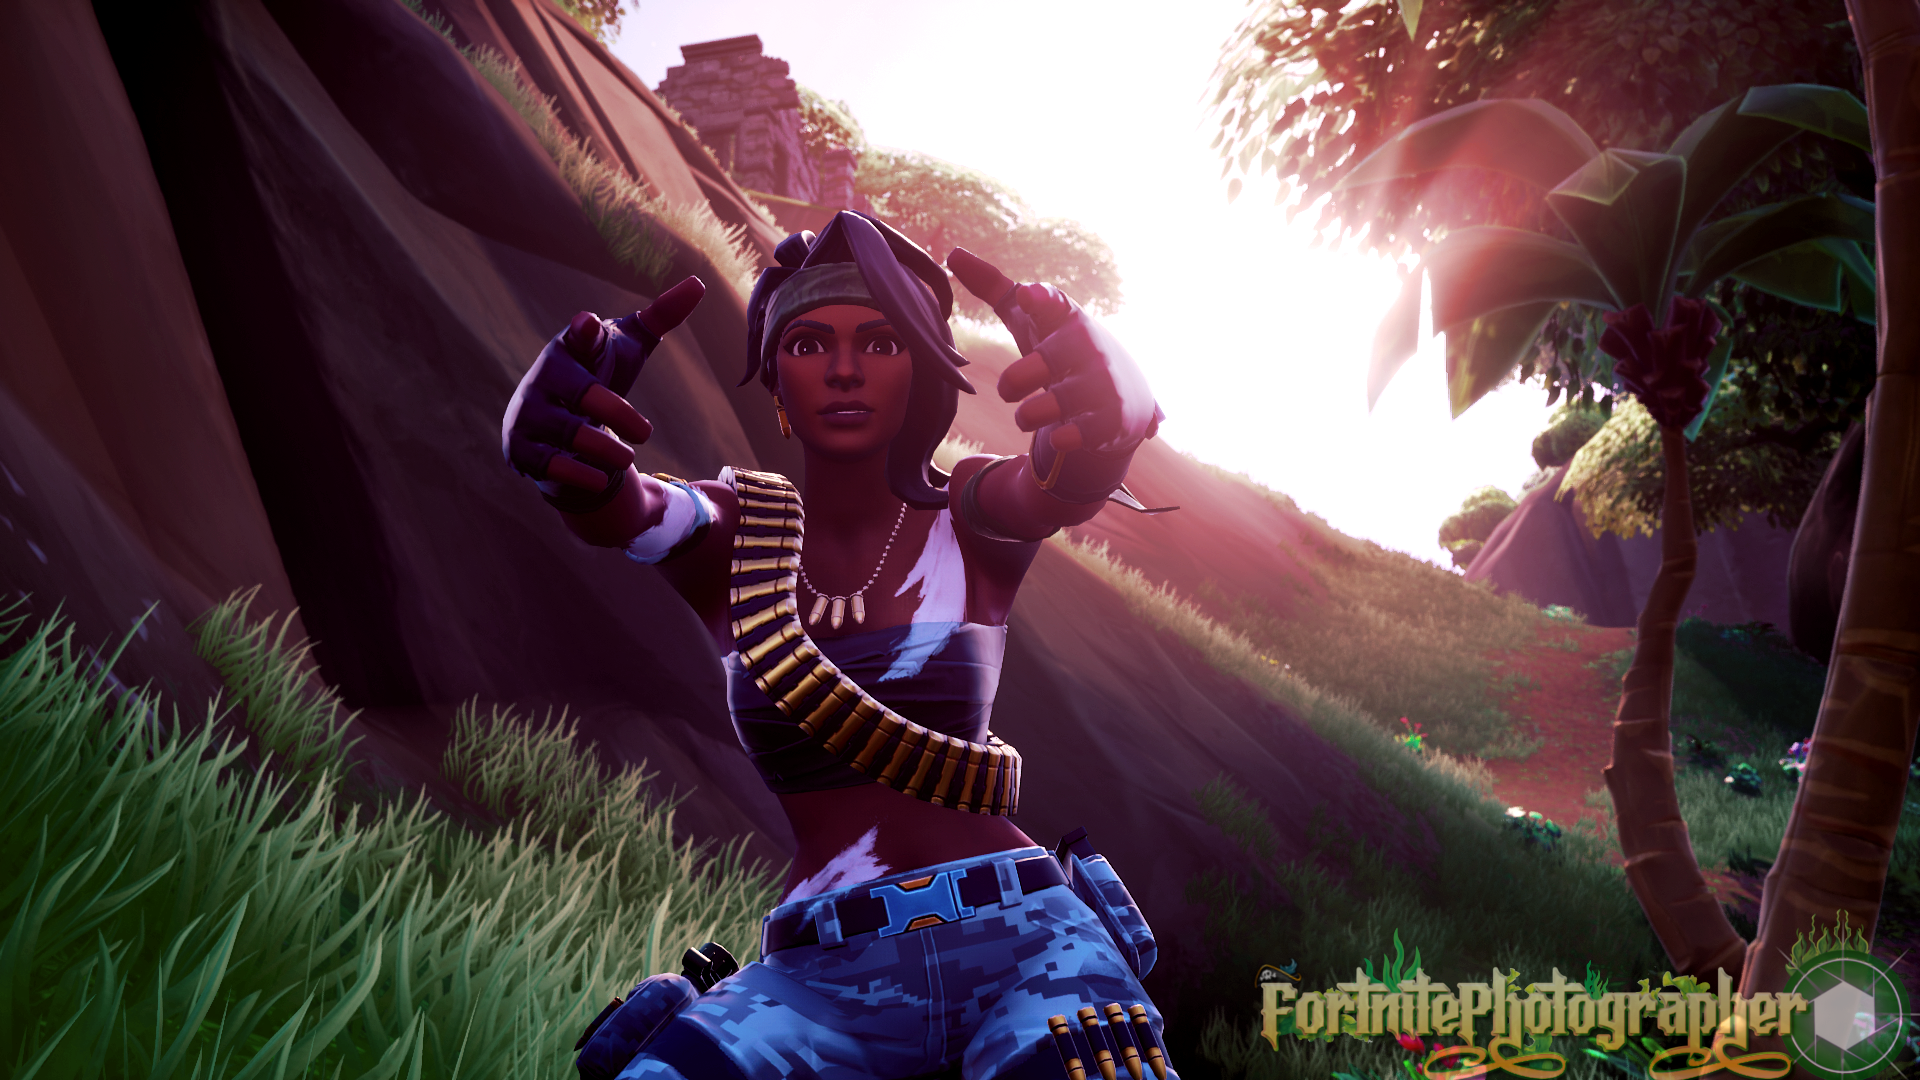 The Hunt Is On We Are Now 100 Twitter Fortnite Photographer Just Hit 100 Followers Thank You All So Much Bandolette Set 02 2 4 Fnphootographer On